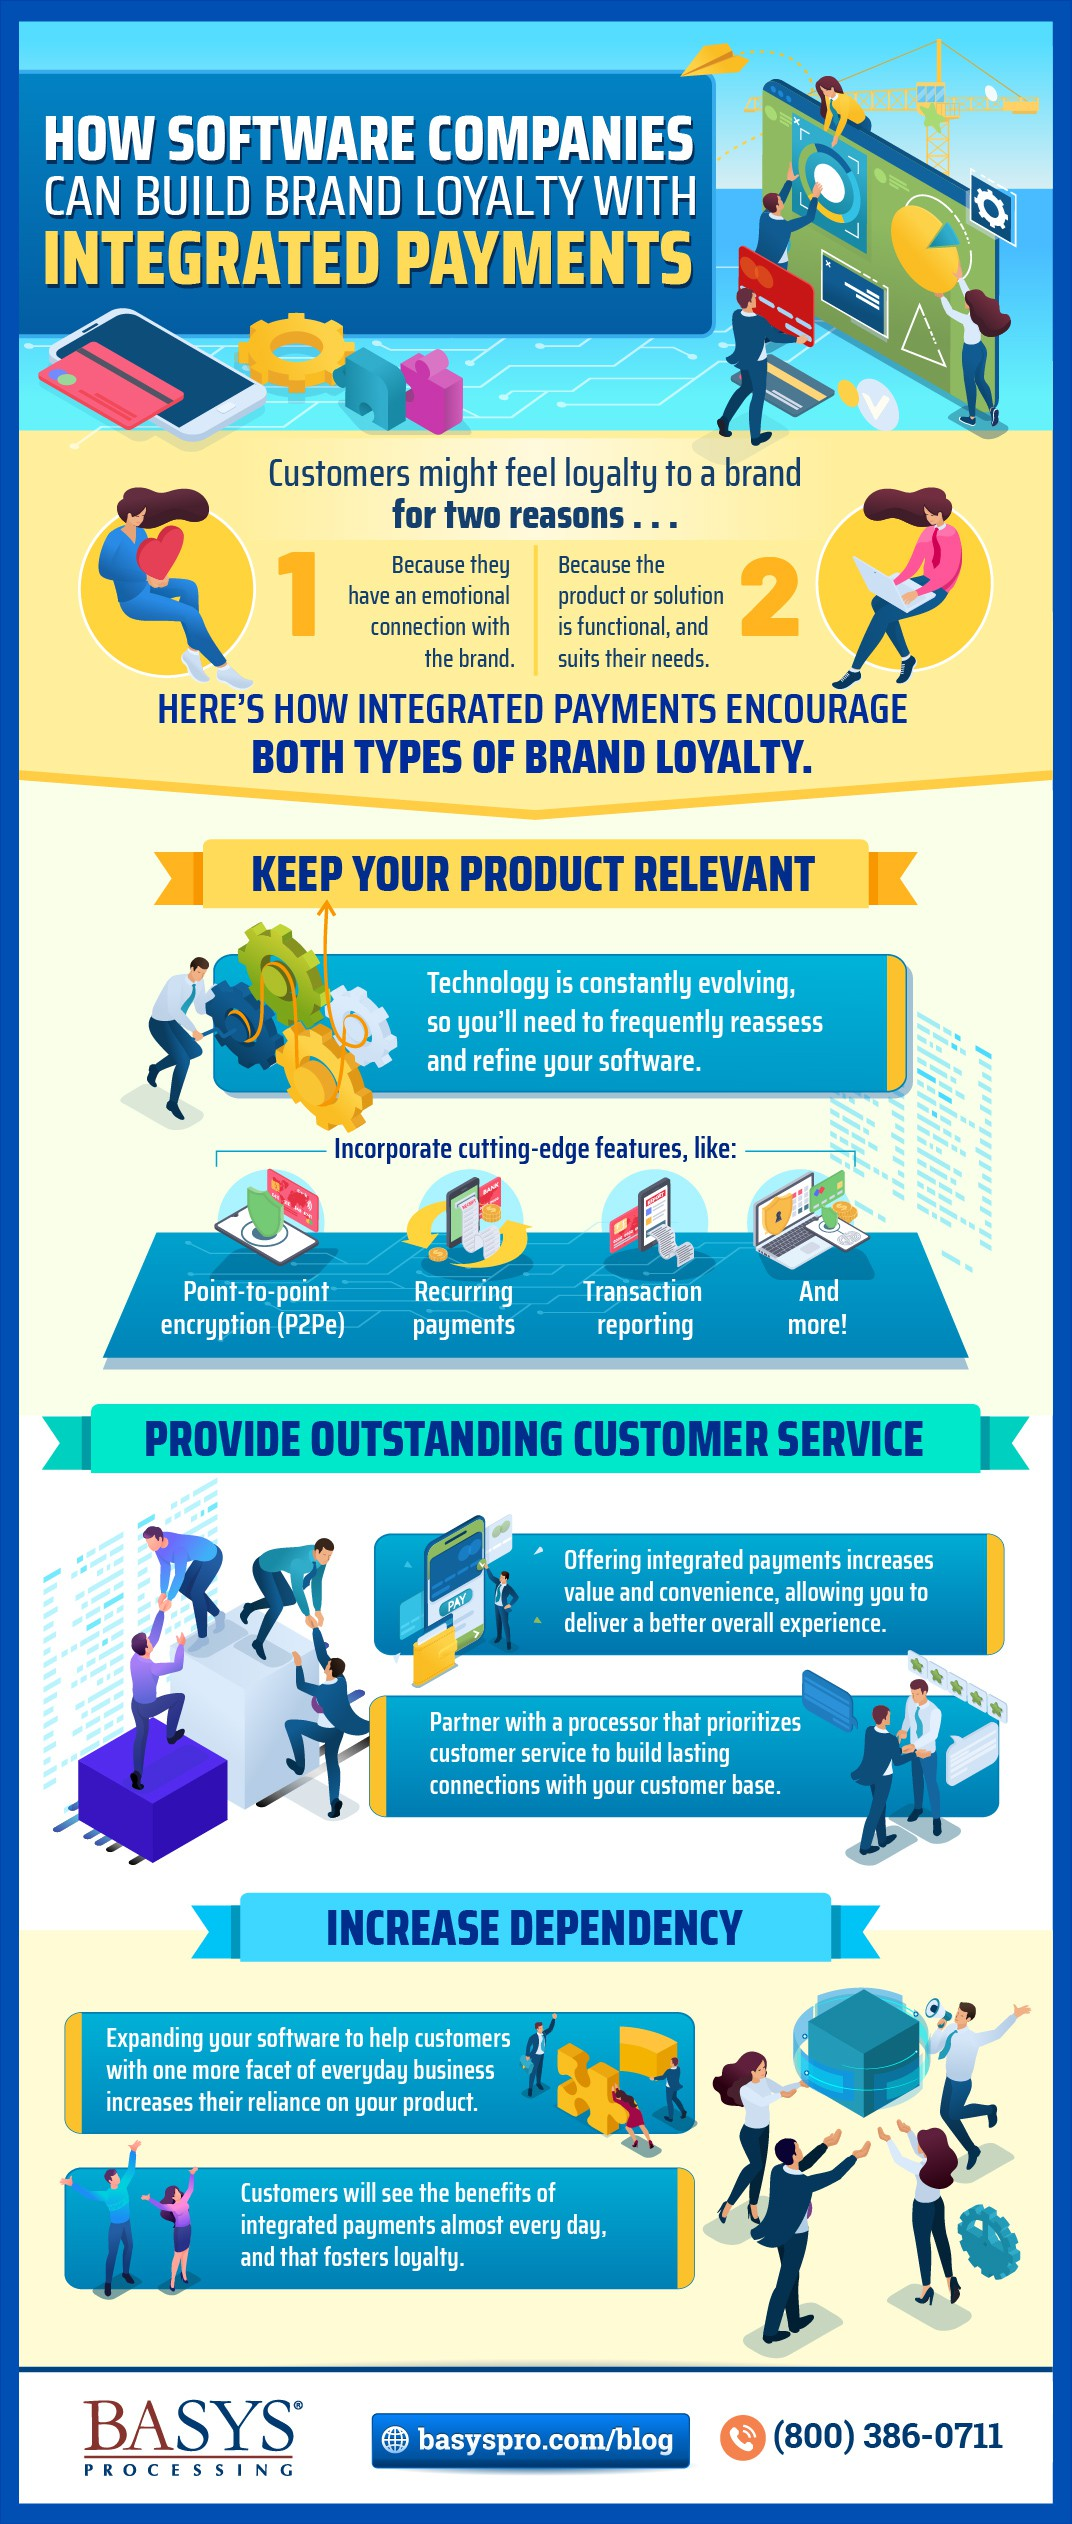 How Software Companies Can Build Brand Loyalty With Integrated Payments